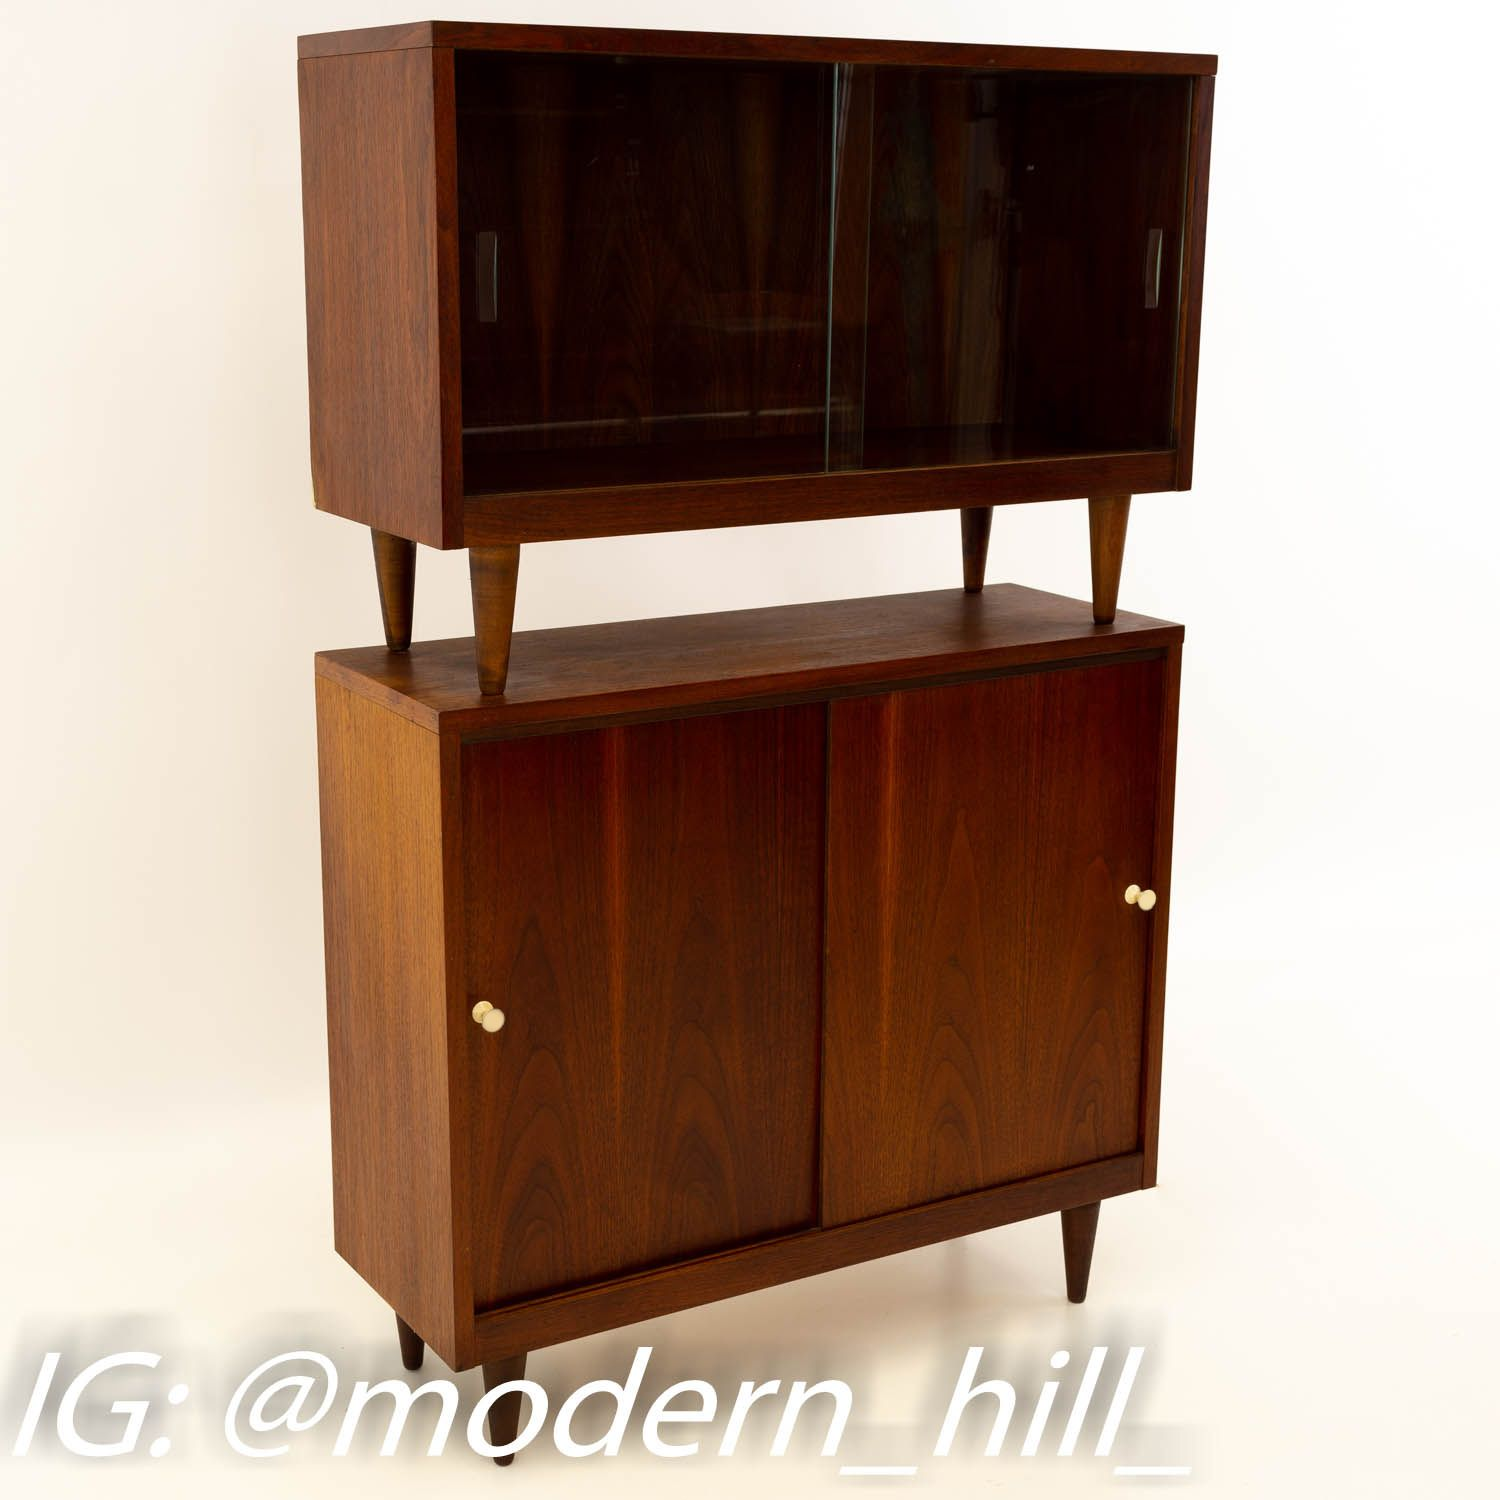 Crescent Furniture 2 Piece Mid Century Walnut Console Media Cabinet Media Cabinet Media Console Shop Storage Cabinets